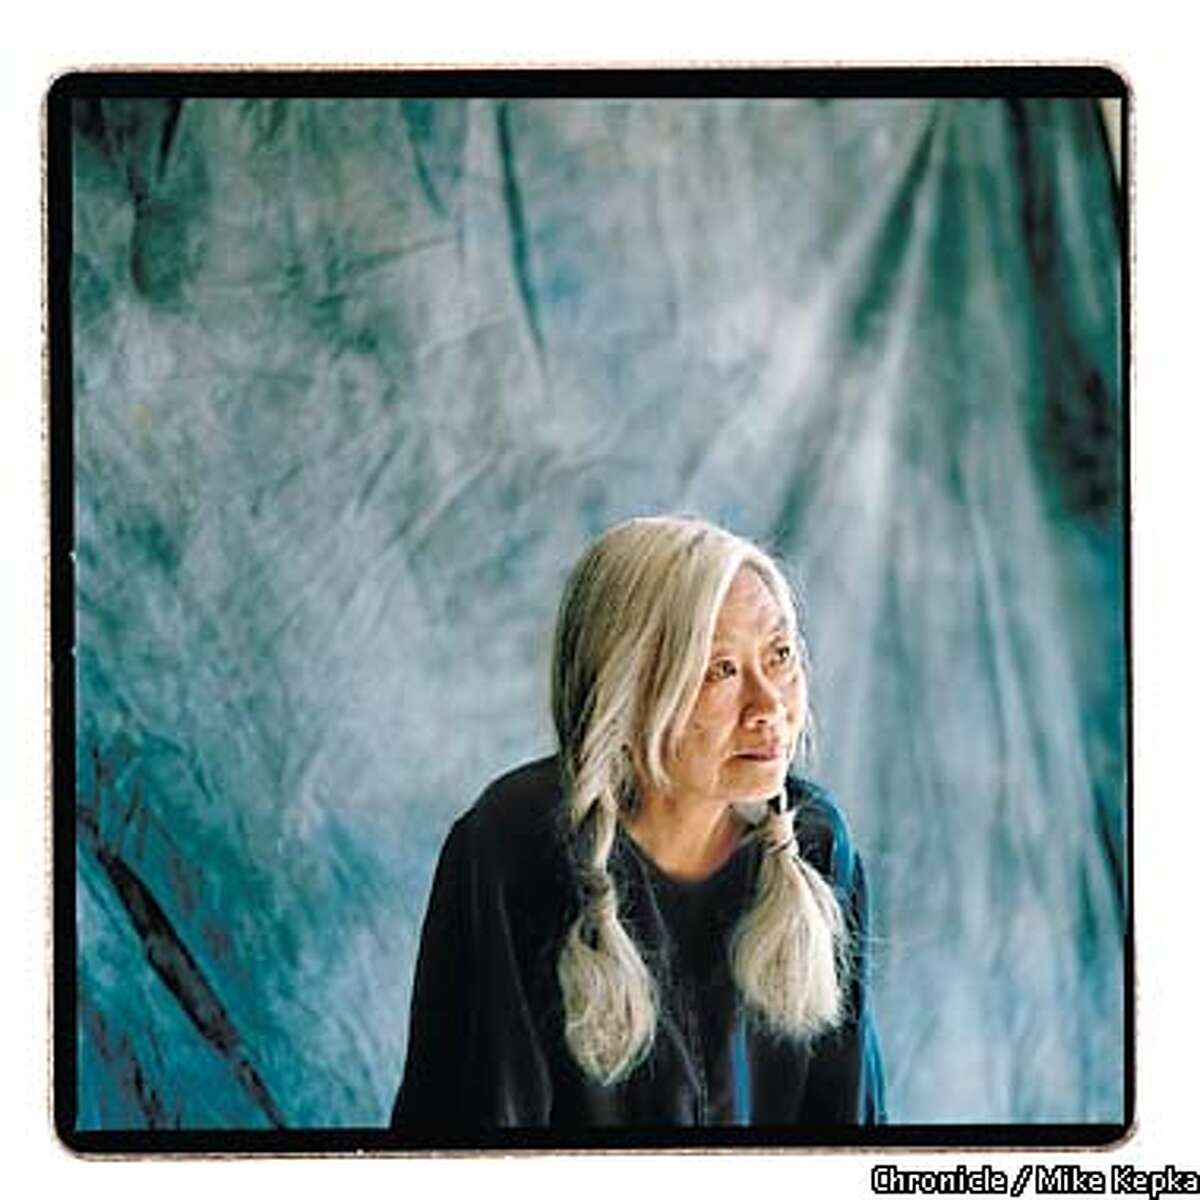 """Oakland based author Maxine Hong Kingston wrote """"The Woman Warrior"""" and the fourth coming book called the """"Fifth Book of Peace."""" BY MIKE KEPKA/THE CHRONICLE"""